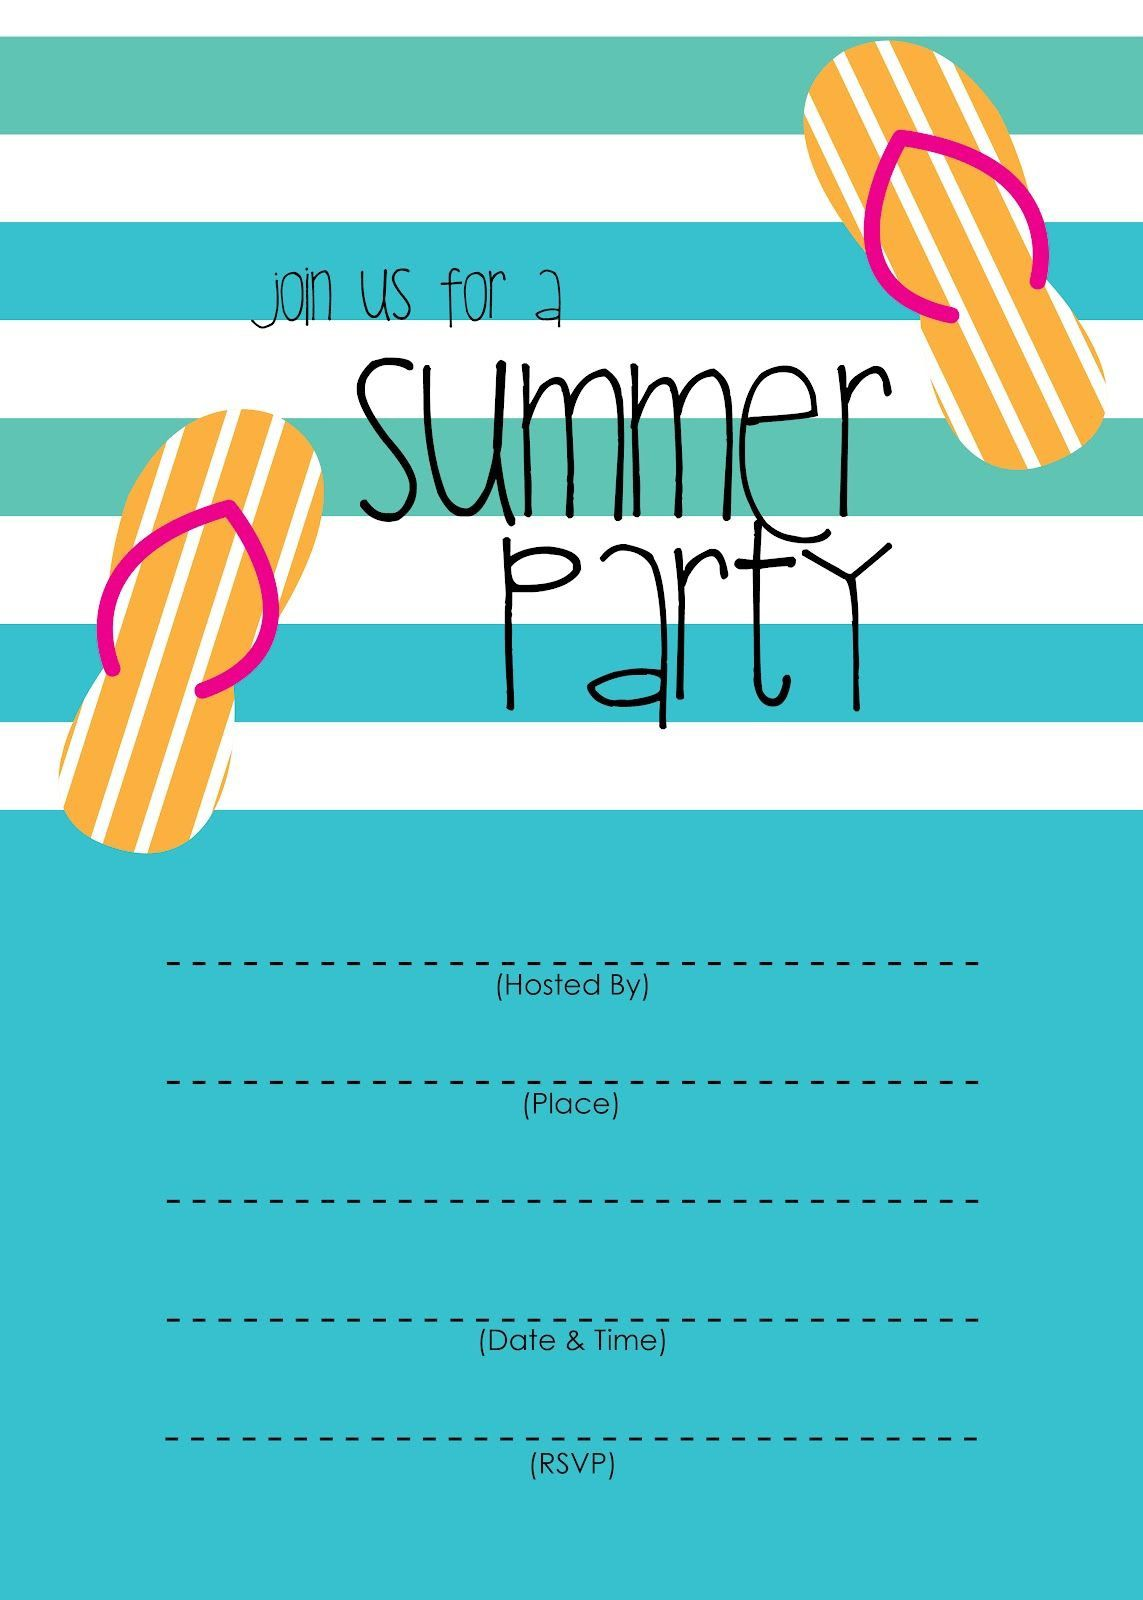 003 Excellent Pool Party Invitation Template Free Idea  Downloadable Printable SwimmingFull